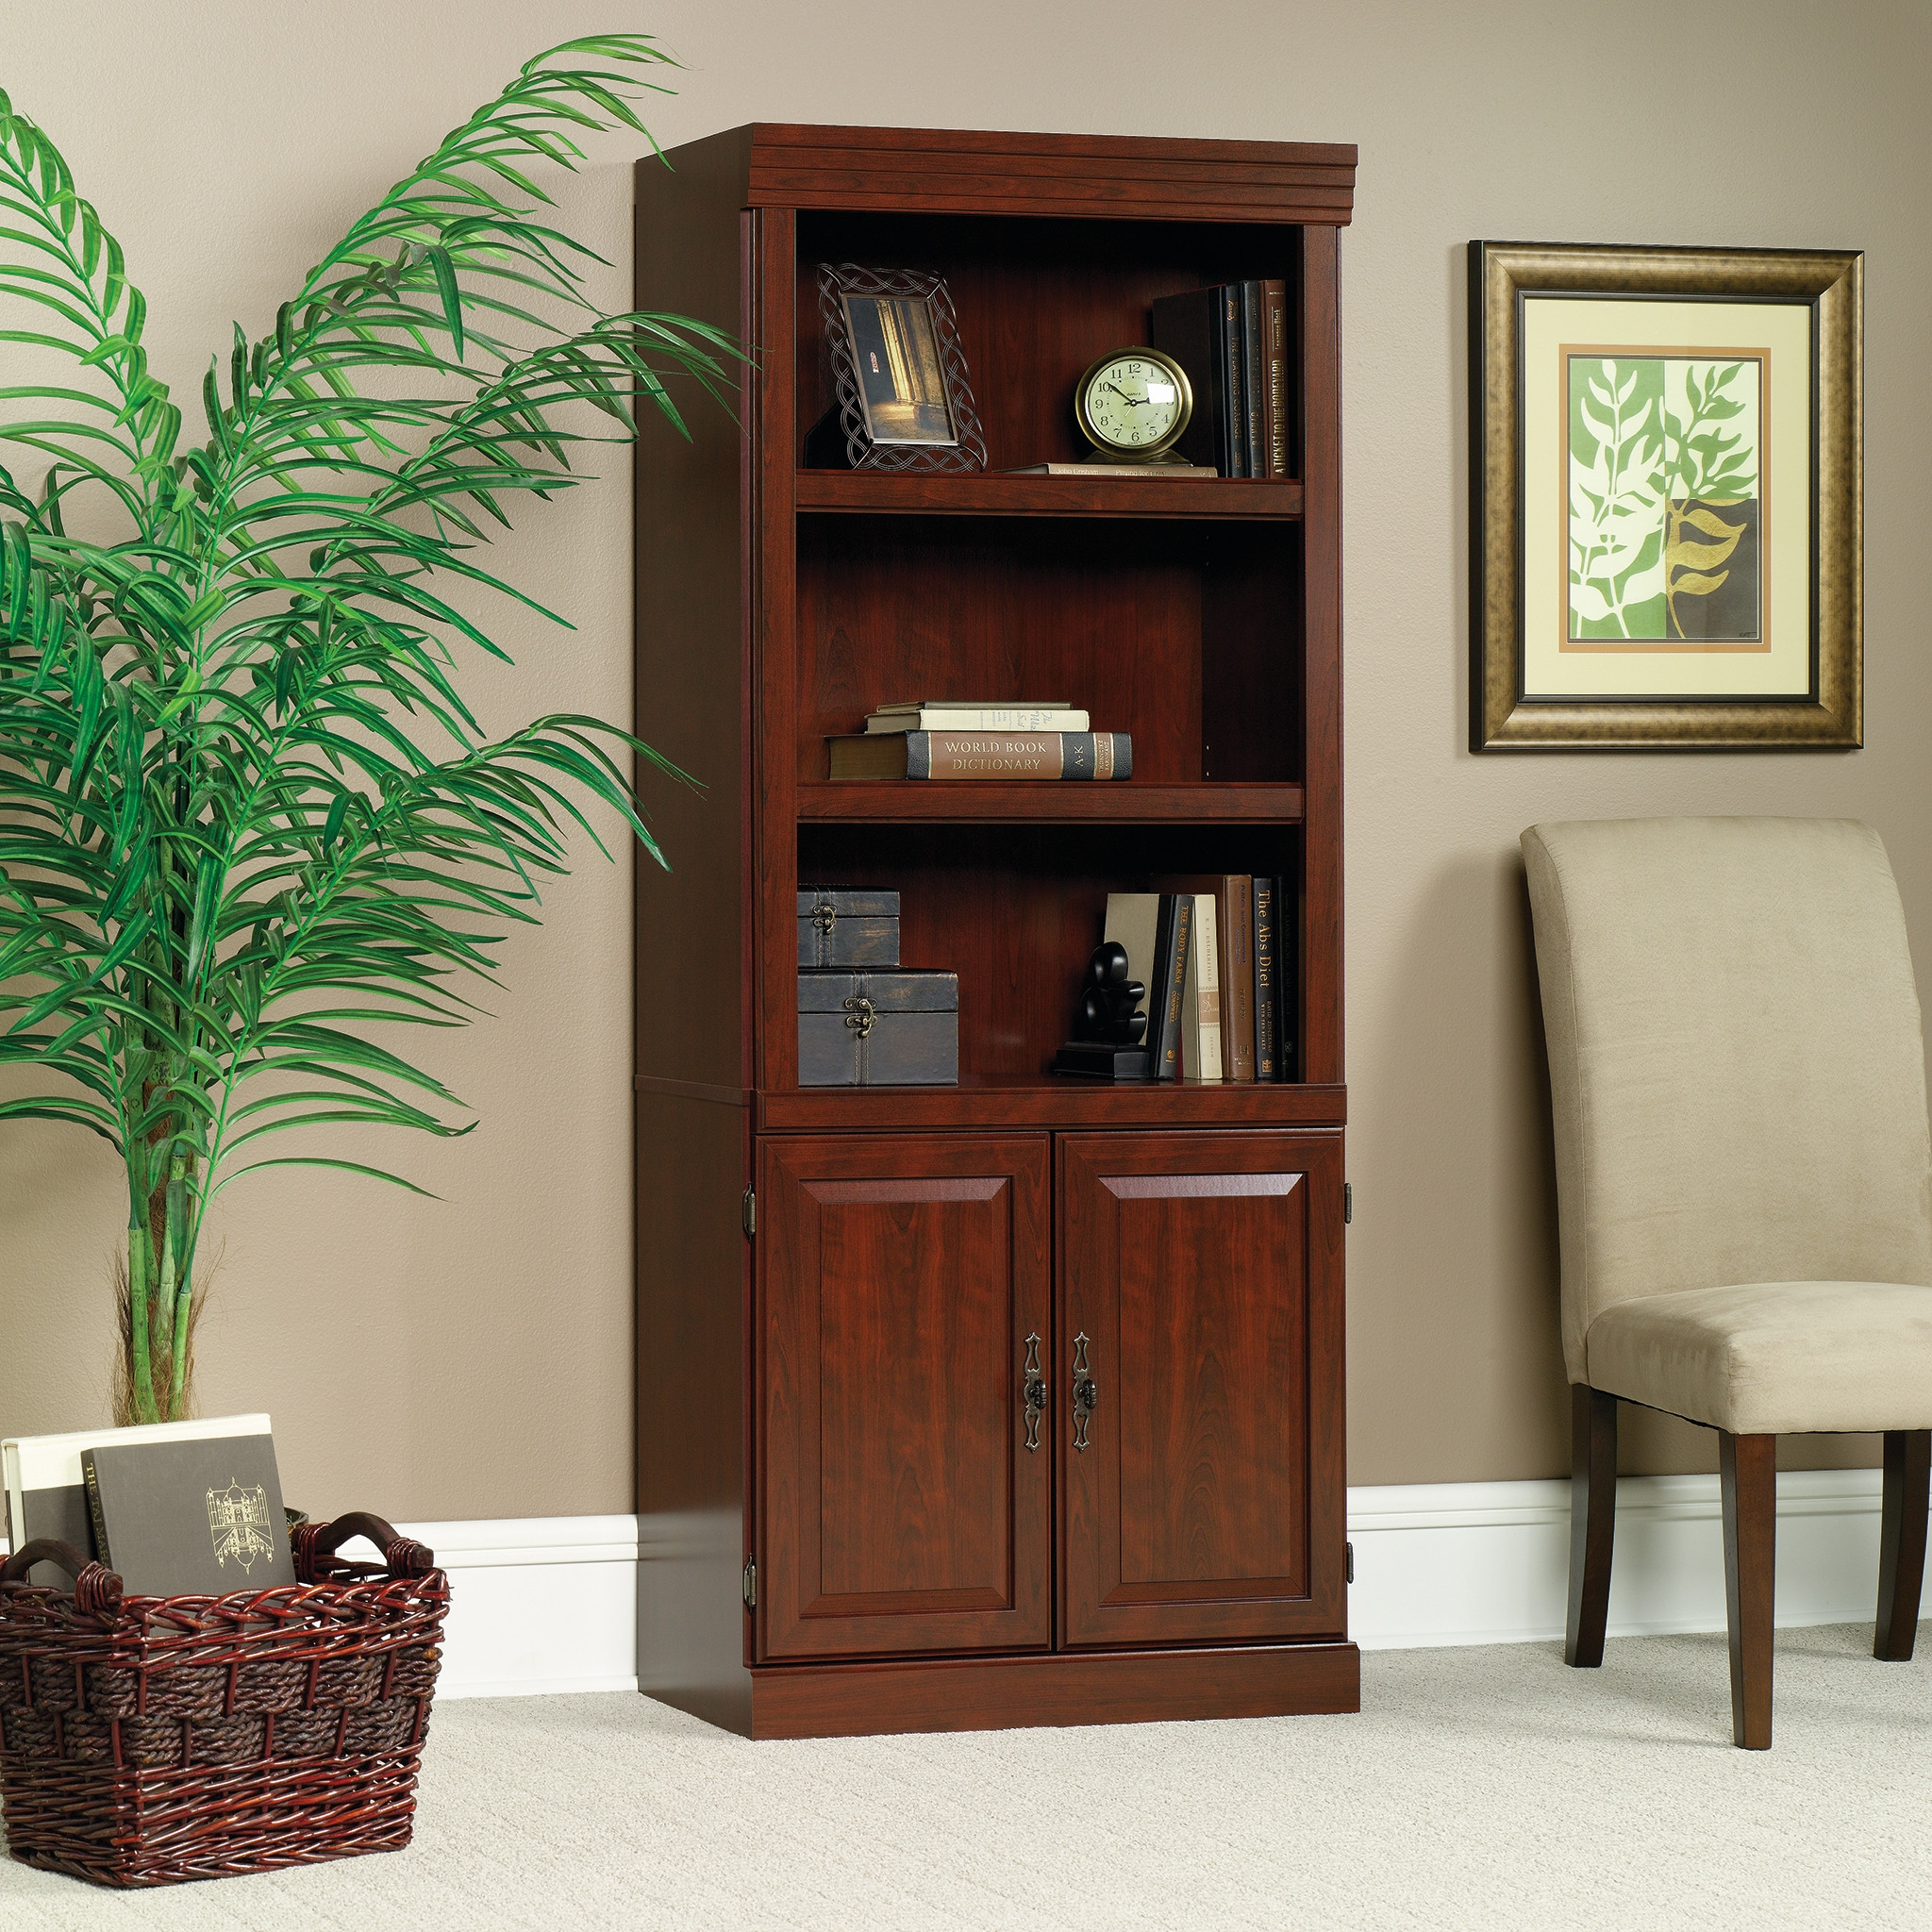 Amazing Narrow Bookcase With Doors 74 With Additional Dresser And Inside Dresser And Bookcase Combo (View 11 of 15)